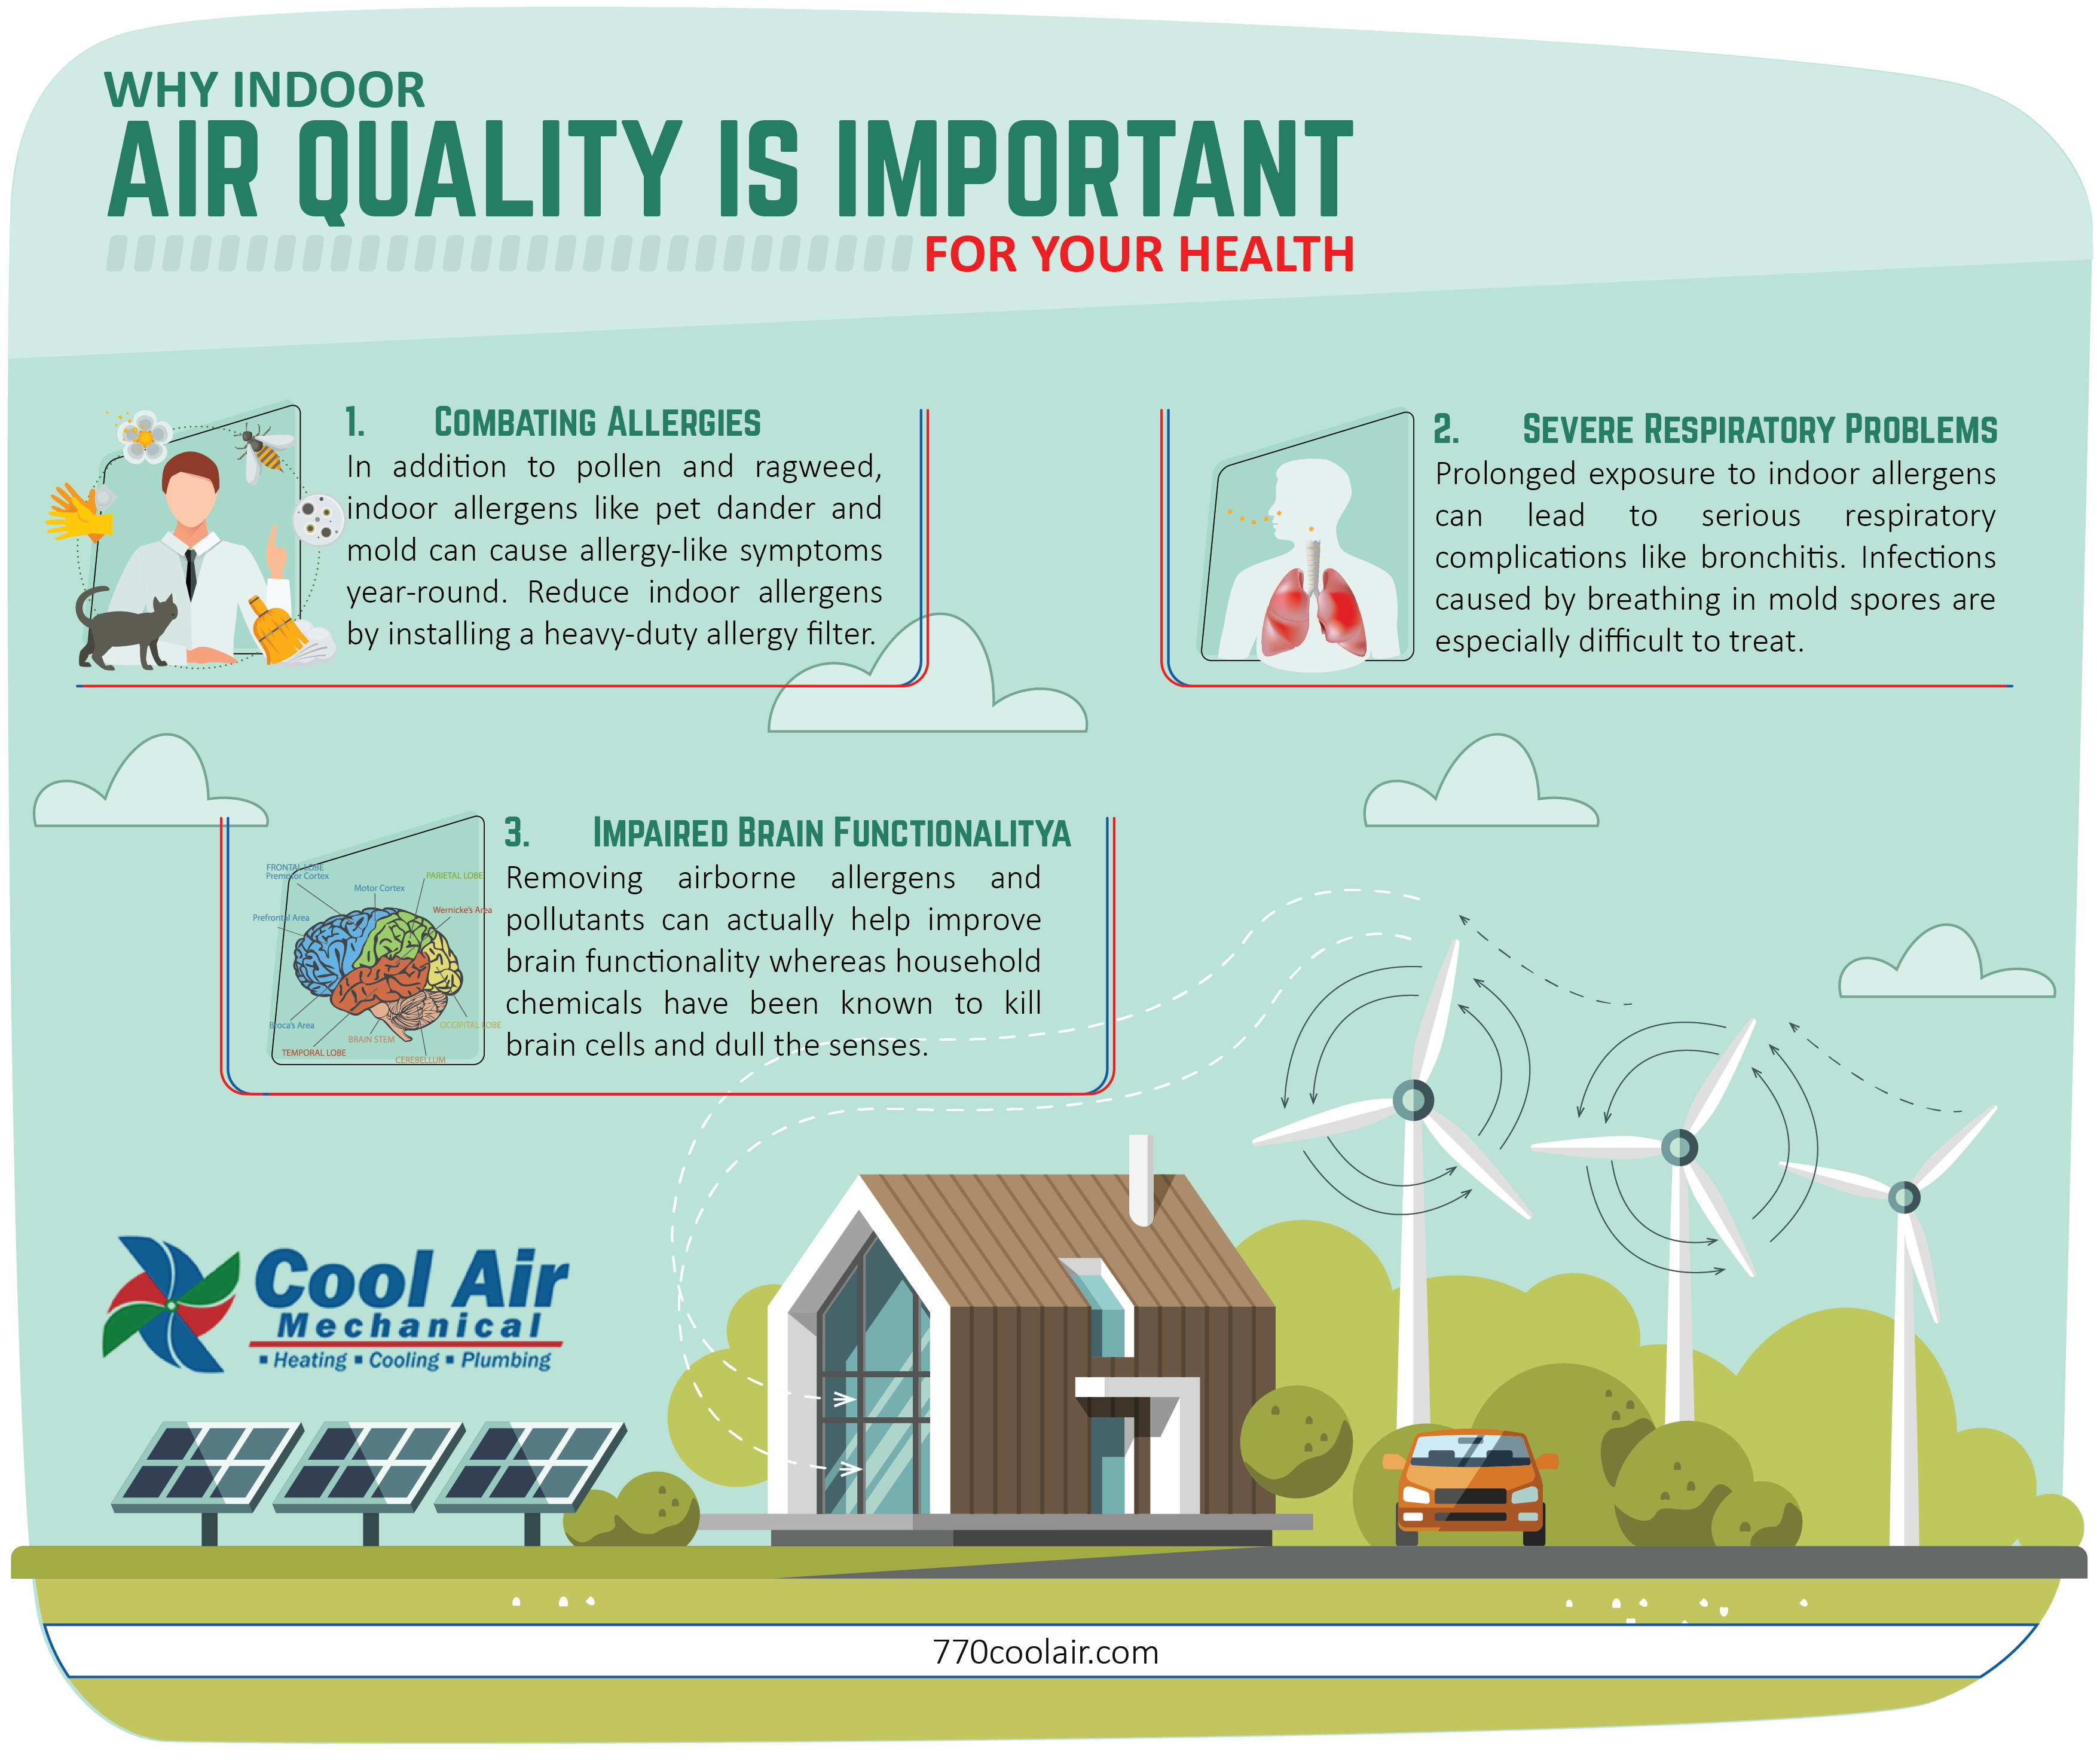 Why Indoor Air Quality is important